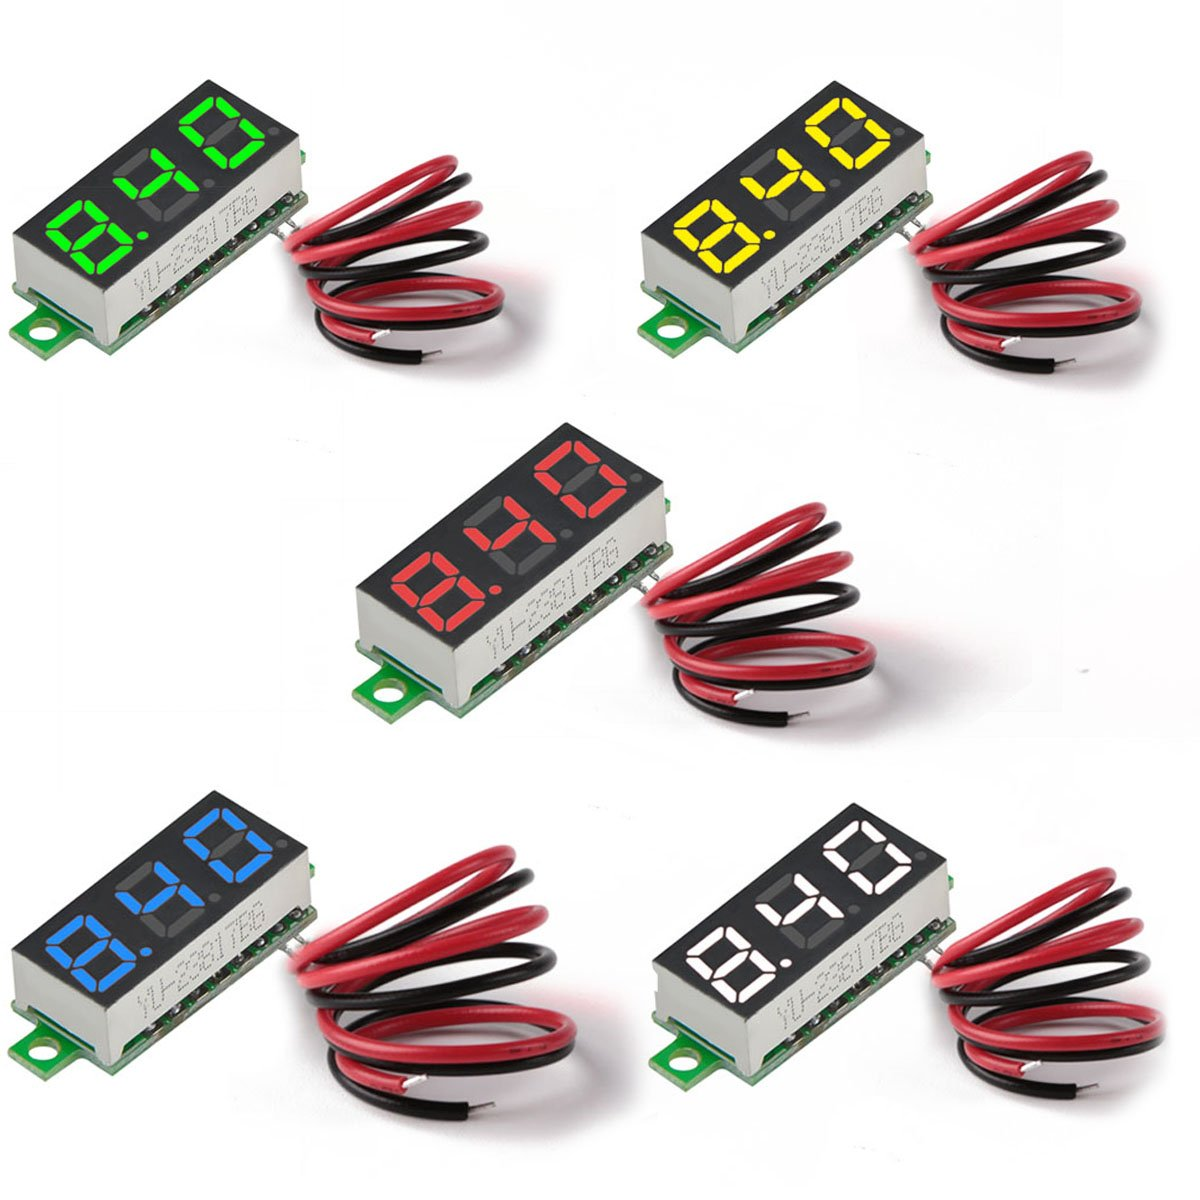 Voltage Testers Measuring Layout Tools Electrical Mains Indicator With A Led Makerfocus 5pcs Mini Digital Dc Voltmeter 028 Inch Two Wire 25v 30v